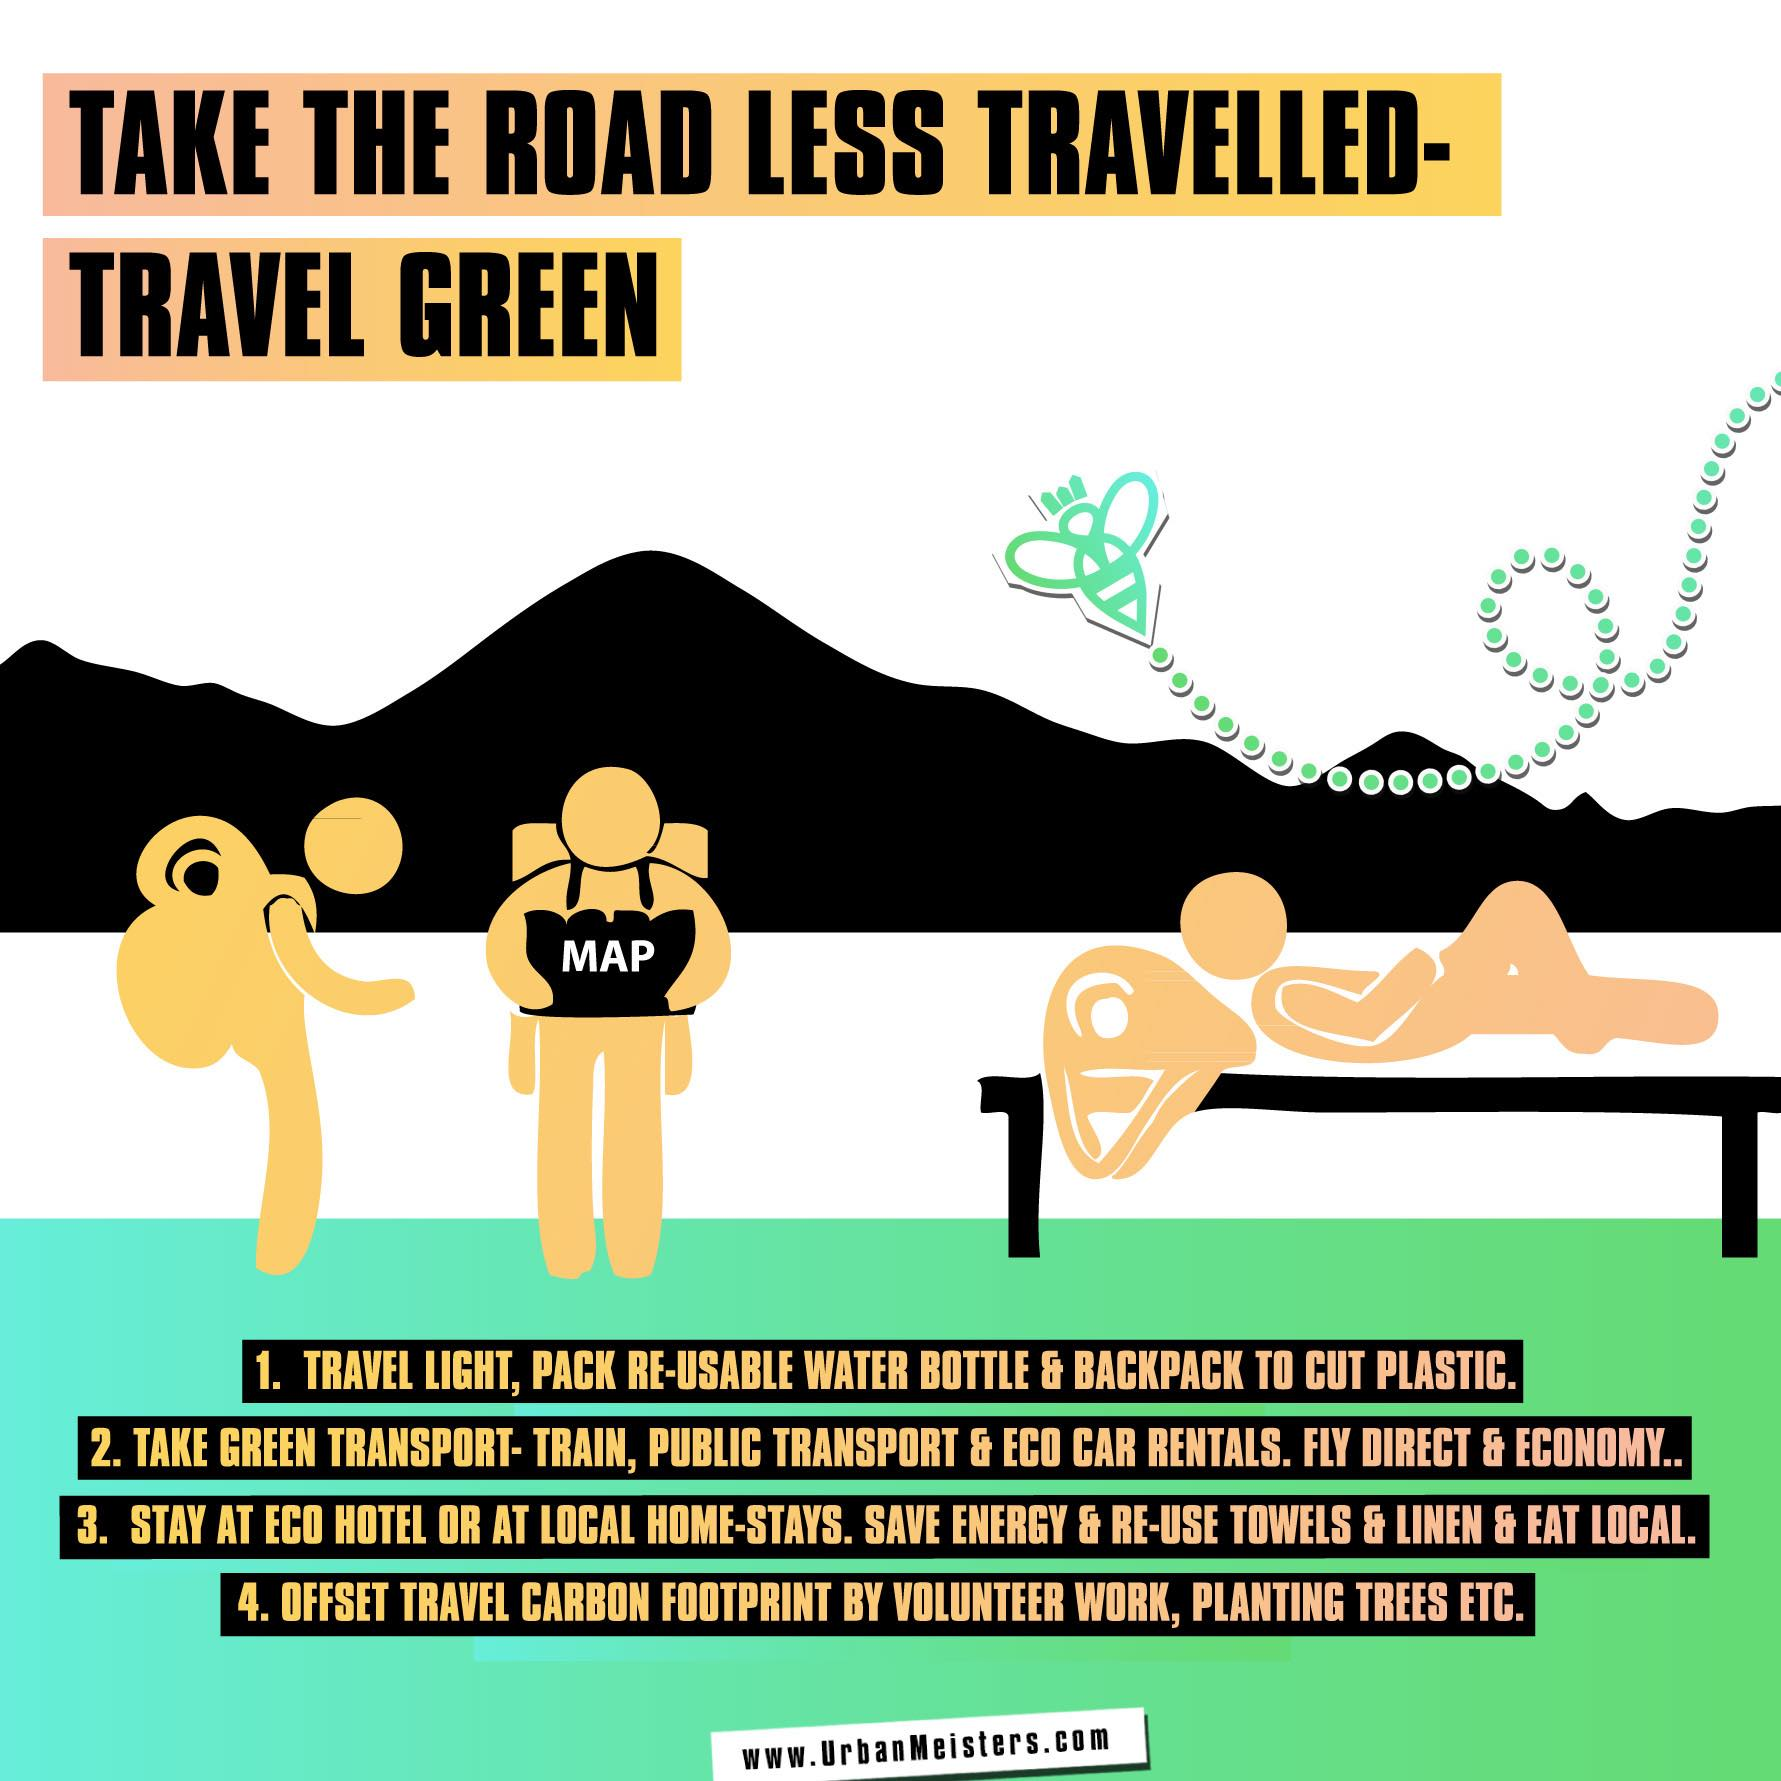 [GREEN LIVING] How to reduce holiday carbon footprint & travel green?